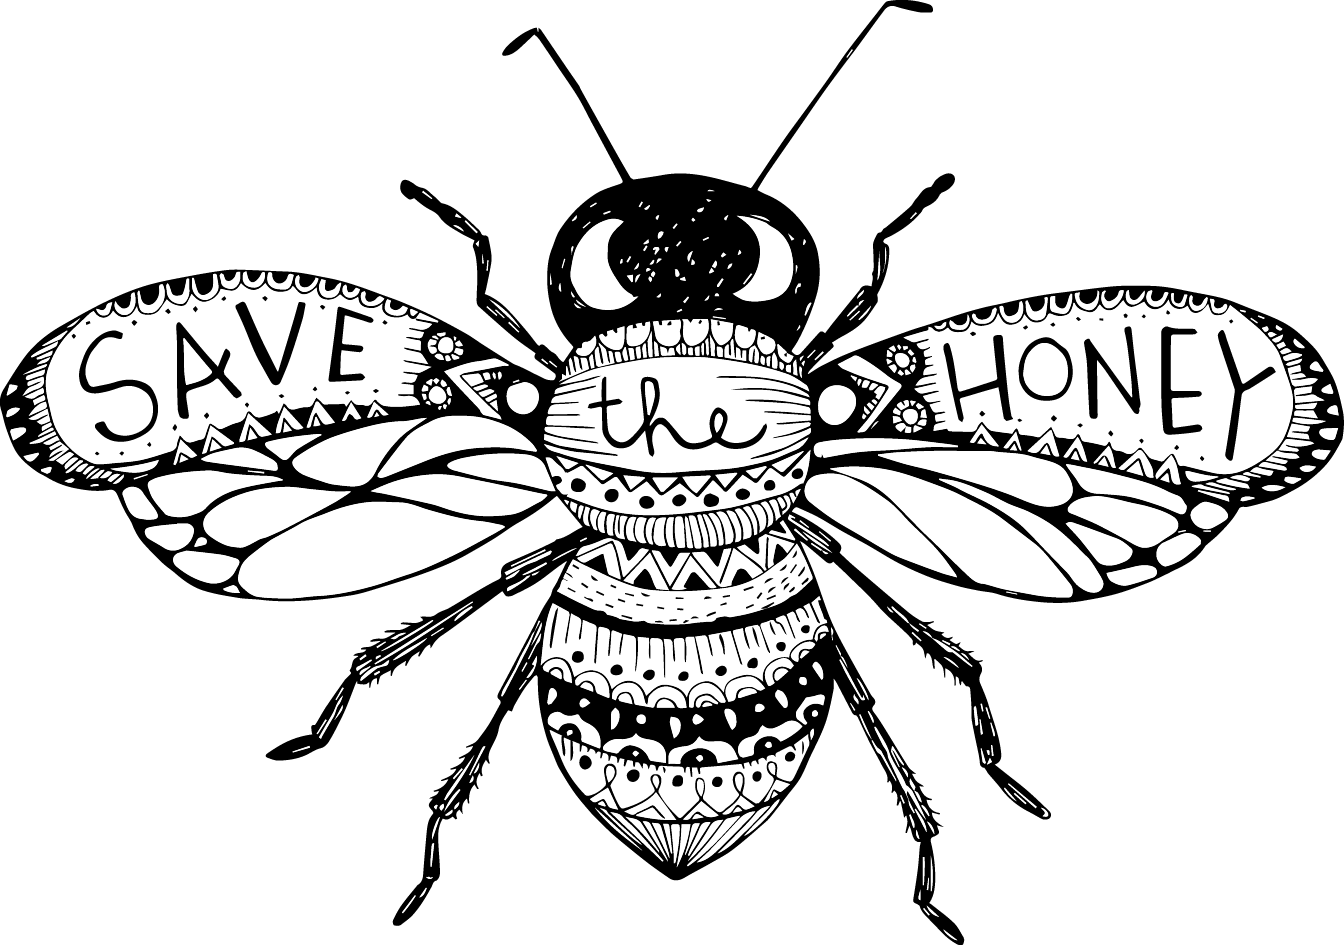 a peachy keen day  honey bees  love and tee shirts